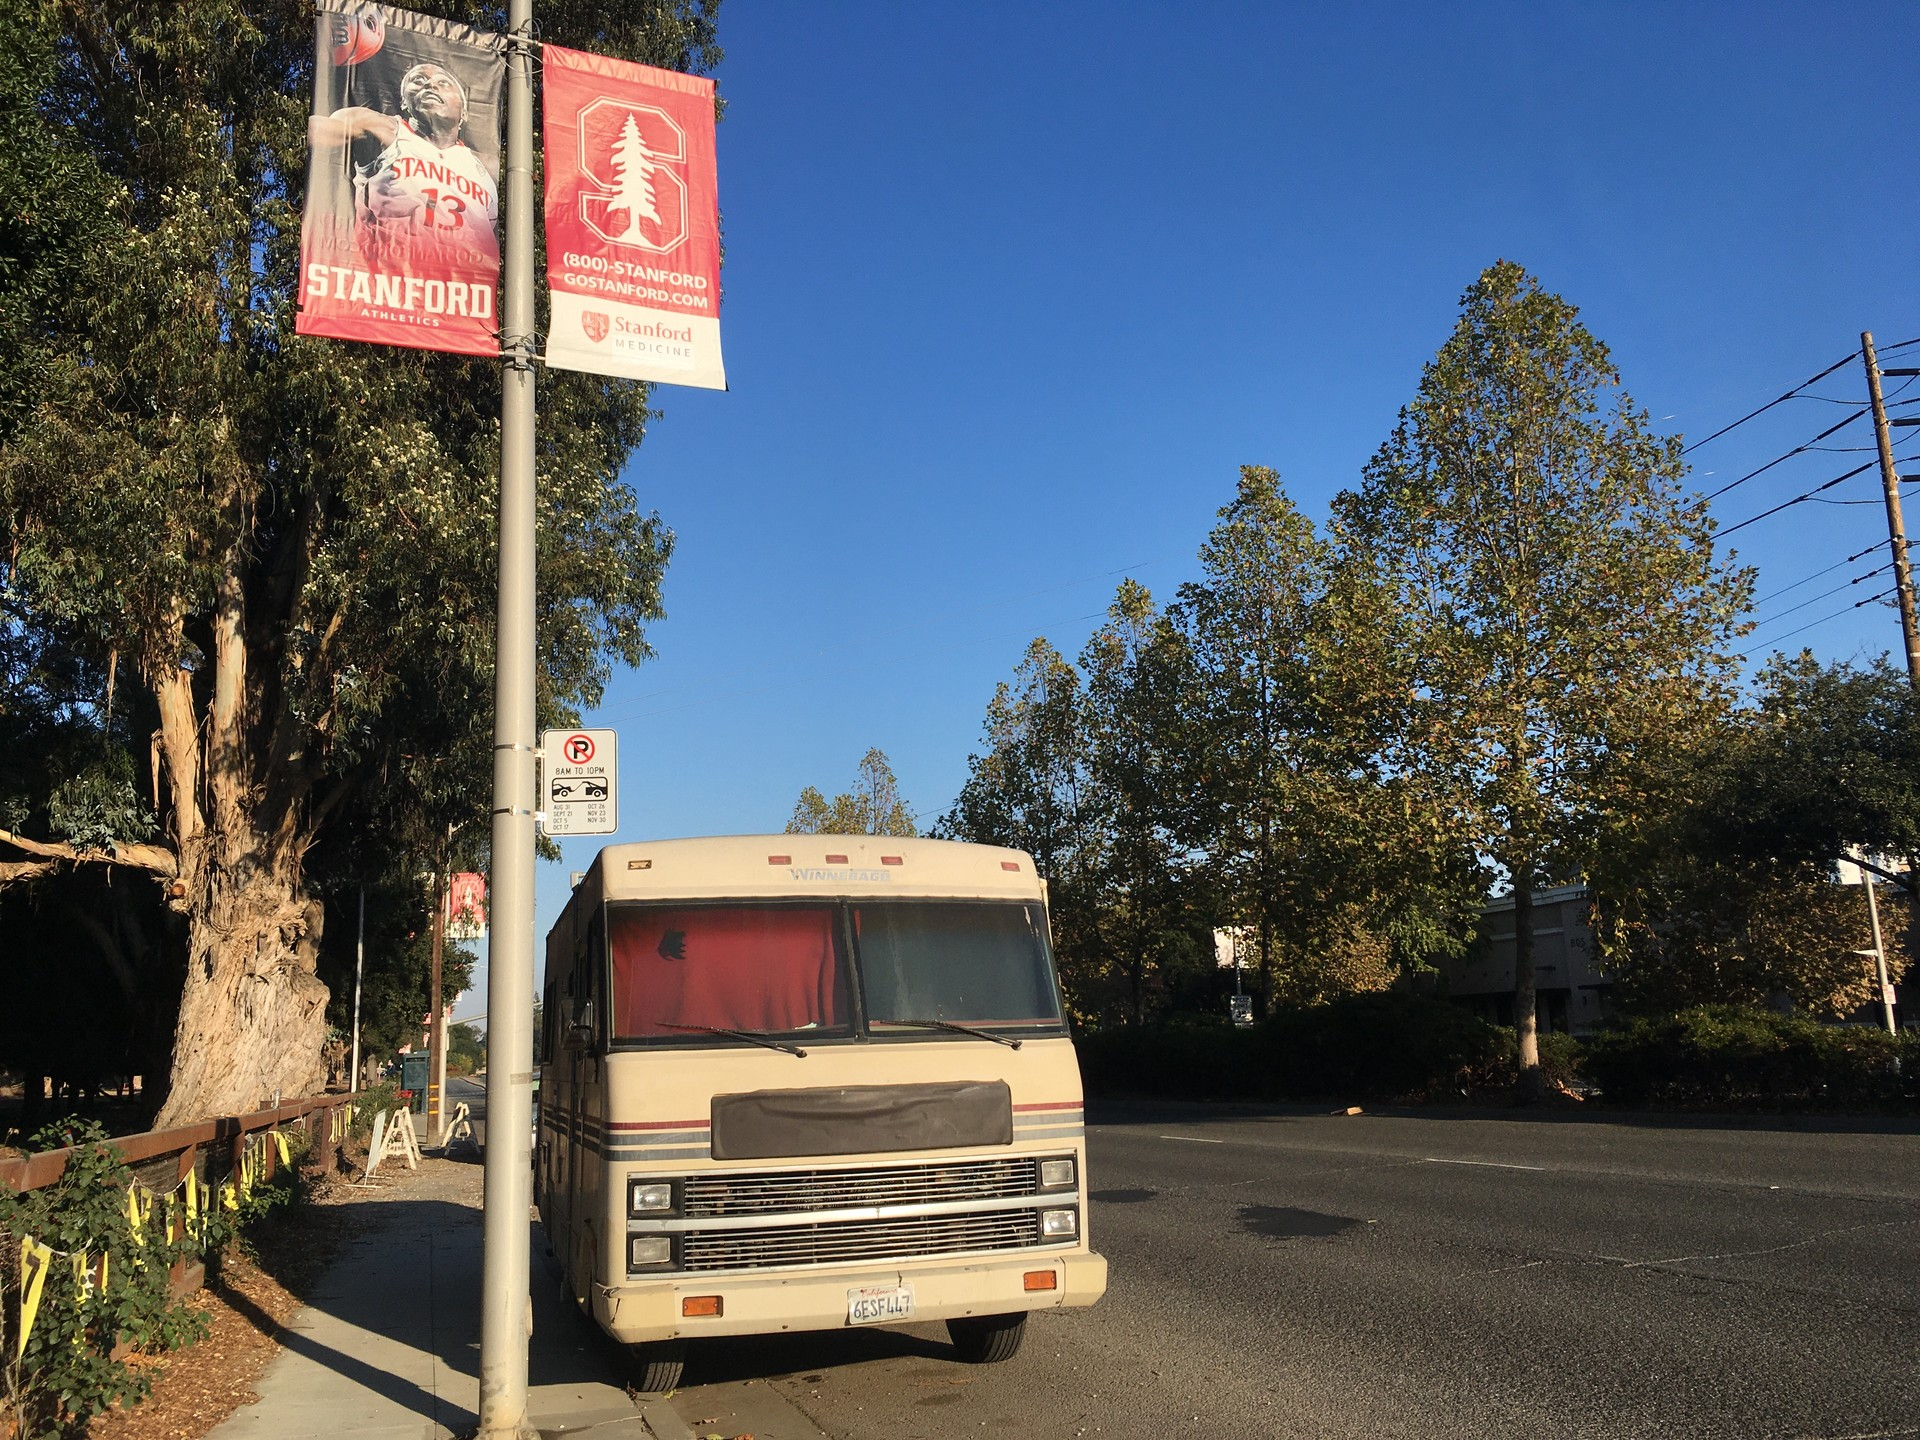 El Camino Real, on the border of the Stanford University campus, has been home for years to an ever shifting collection of RVs where construction workers and local homeless people live — a reflection of the local housing crisis.